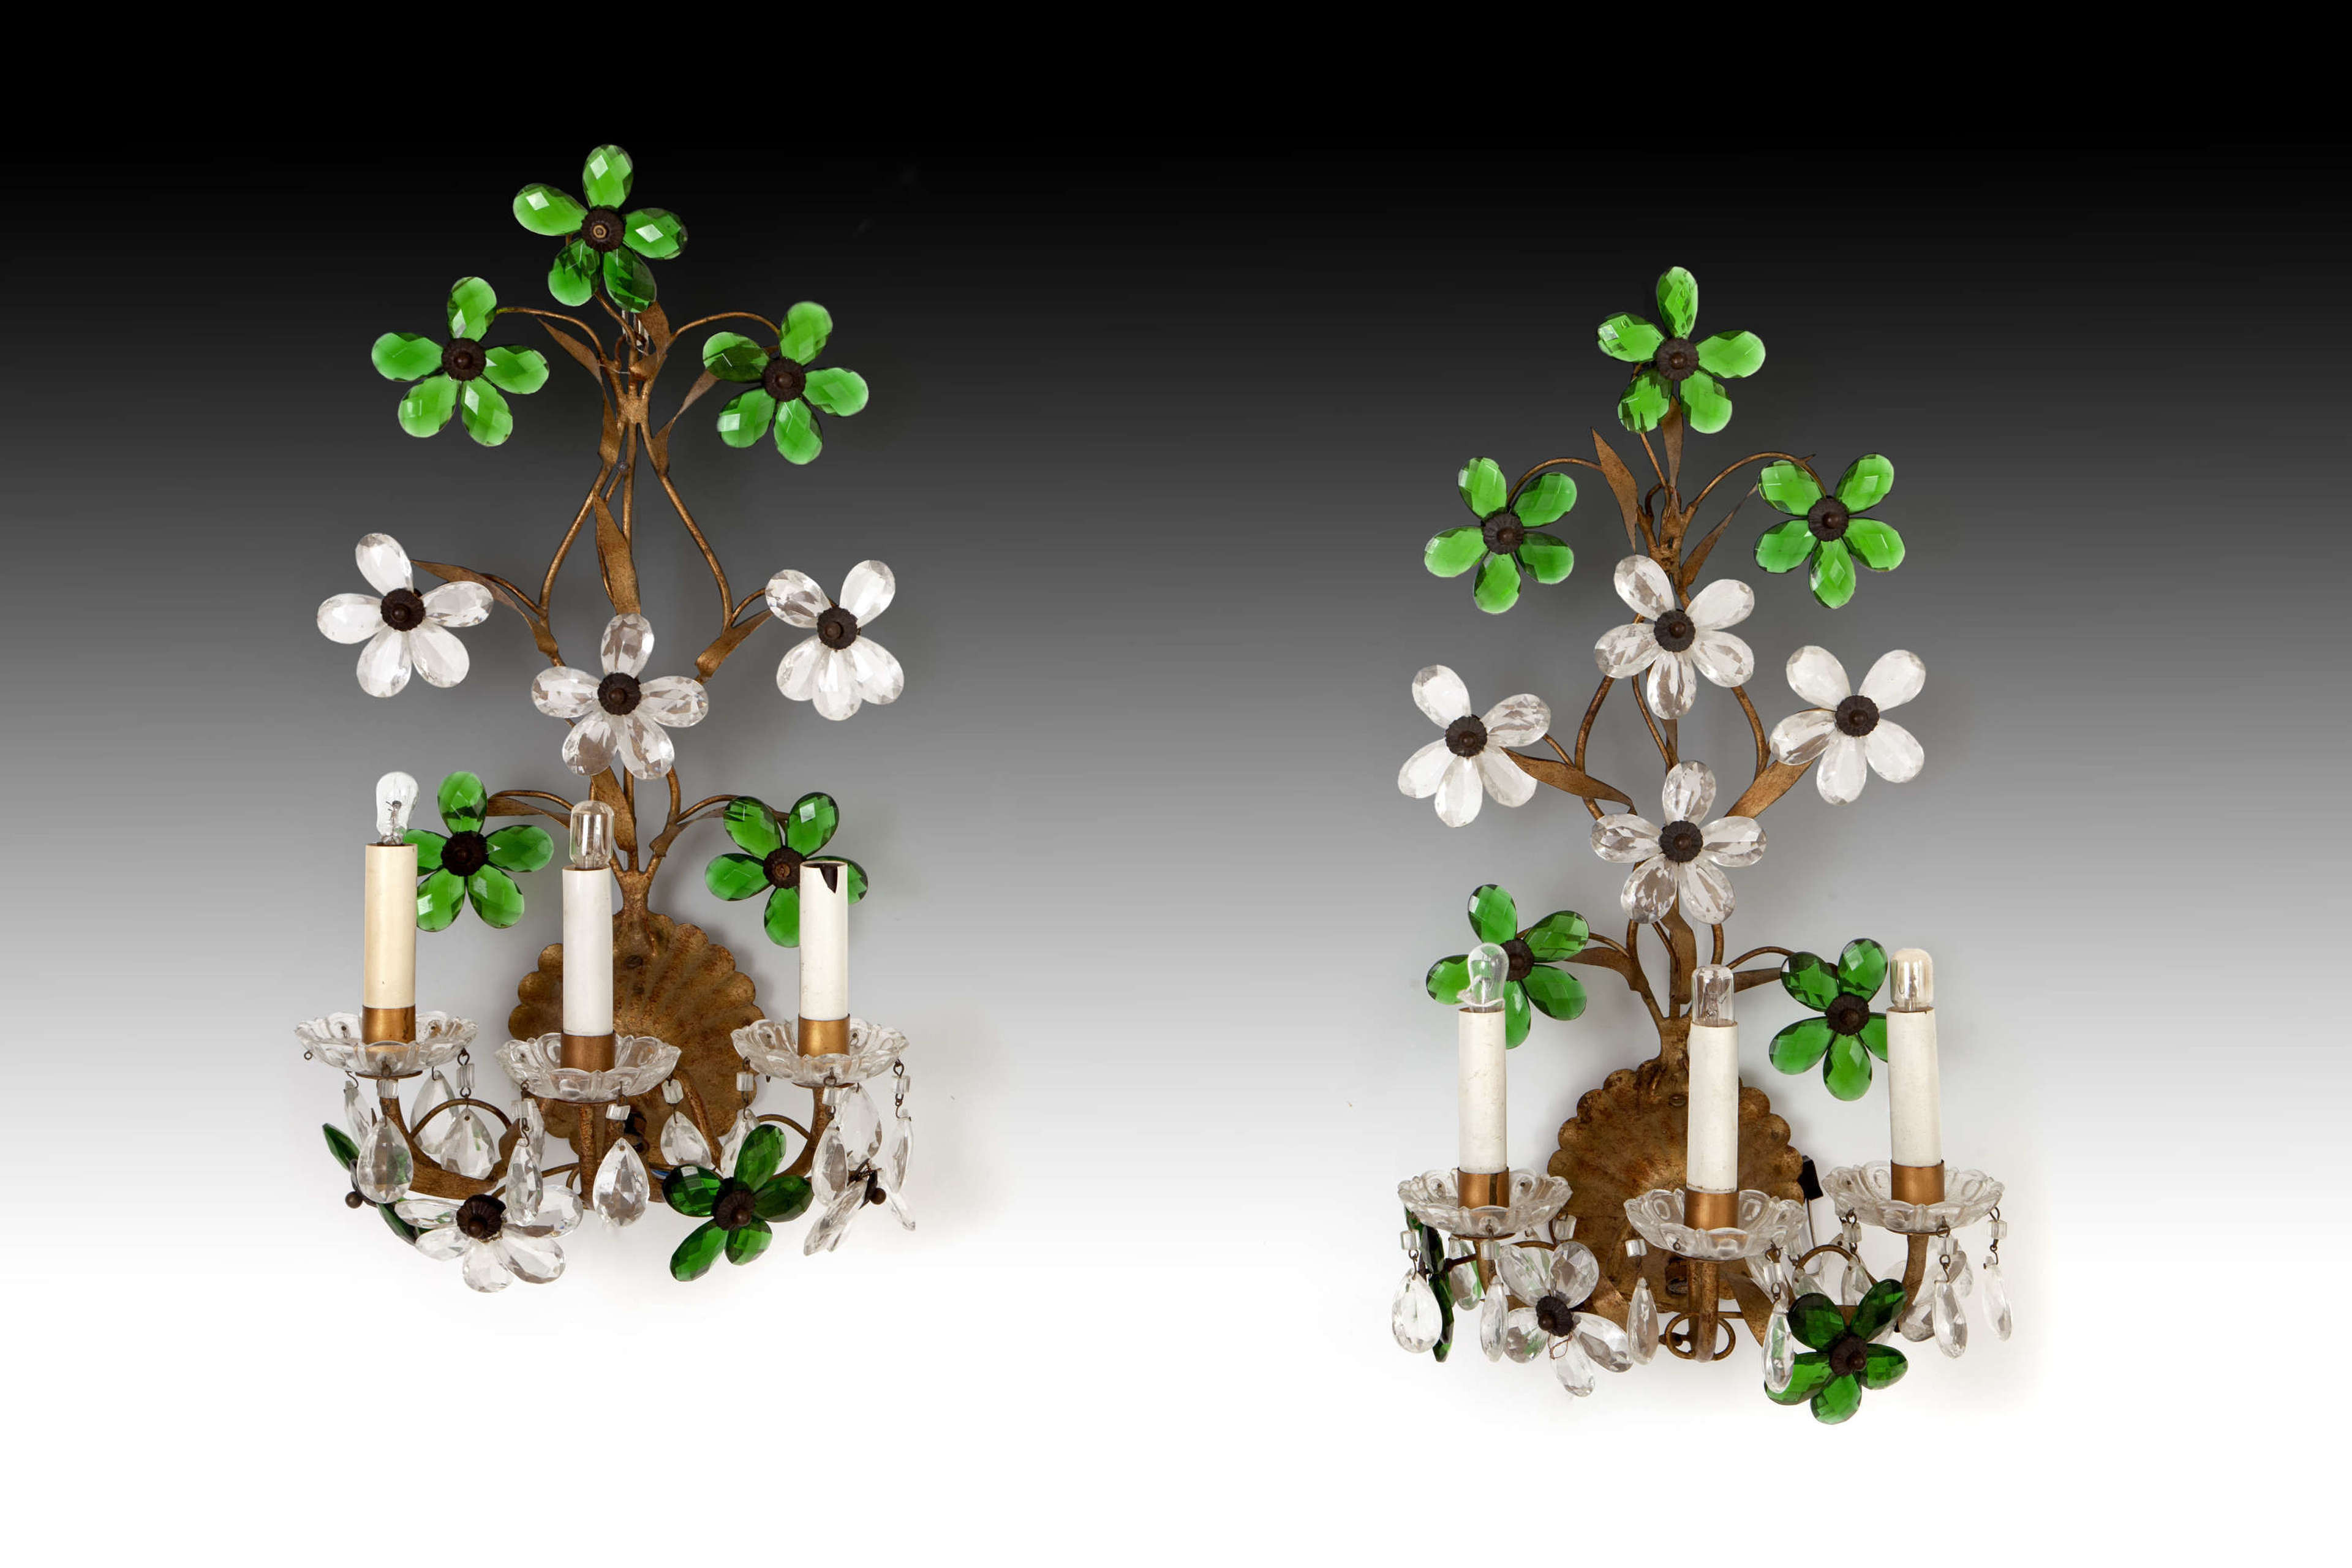 Pair of Emerald and Clear glass wall lights